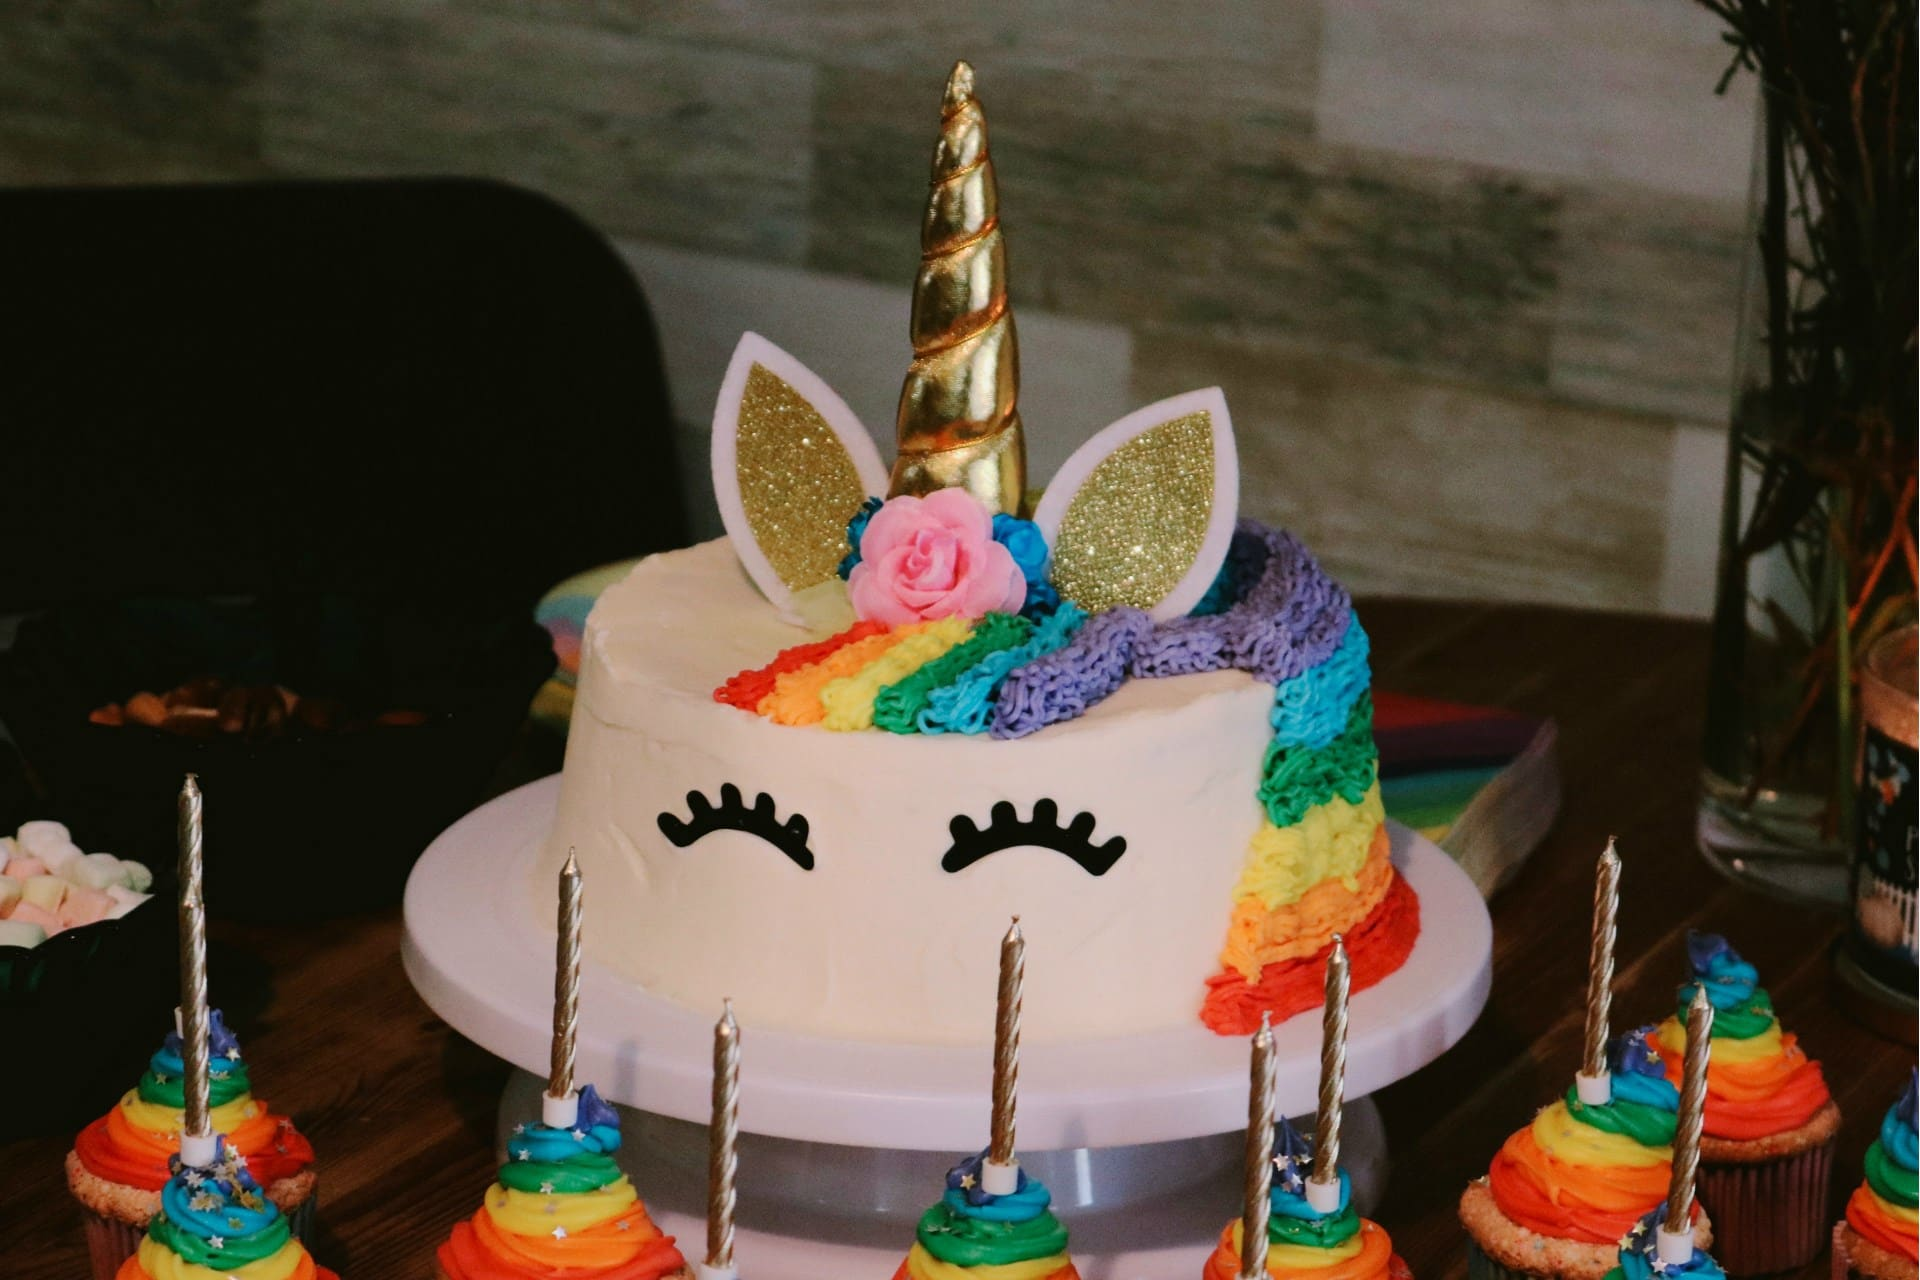 original_Unicorn-Cake.jpg